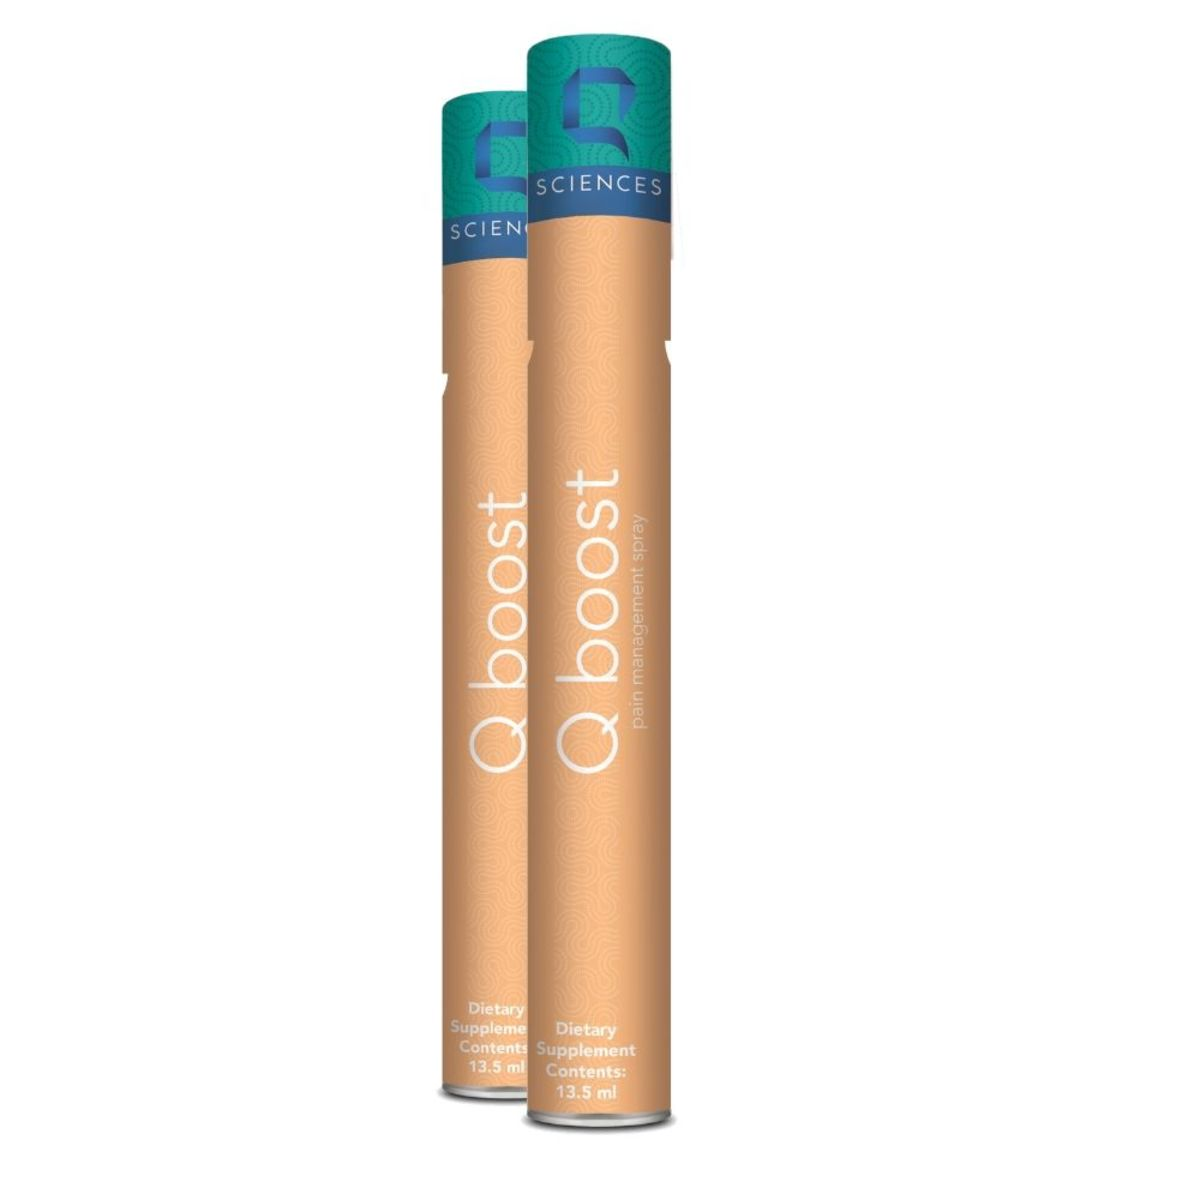 QBoost Energy Boost Spray